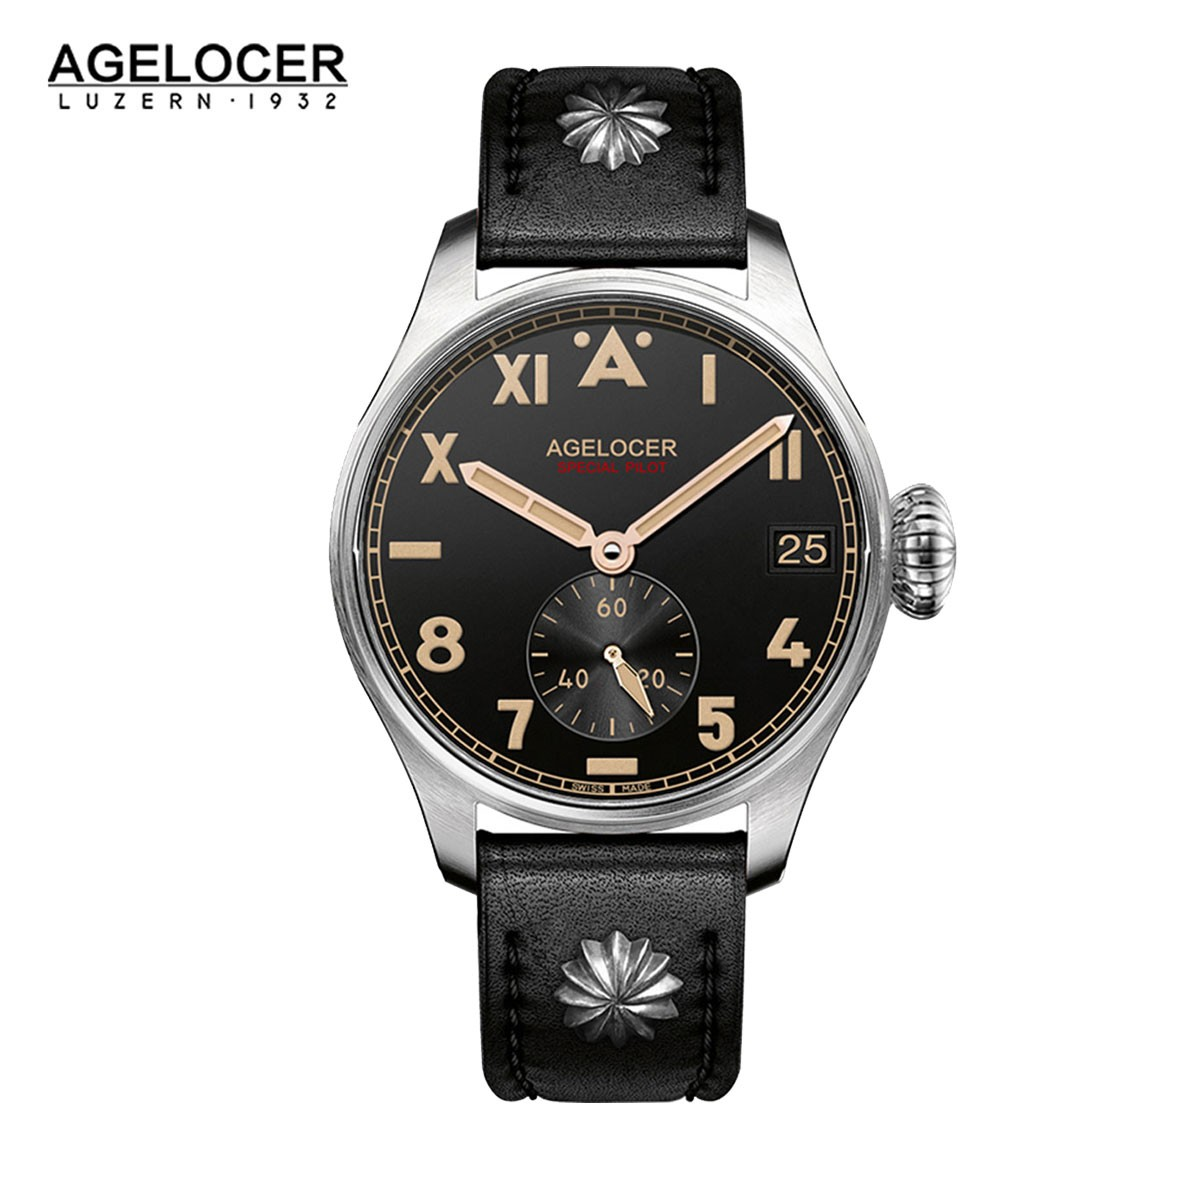 Agelocer North Carolina 42mm Steel 3101A1